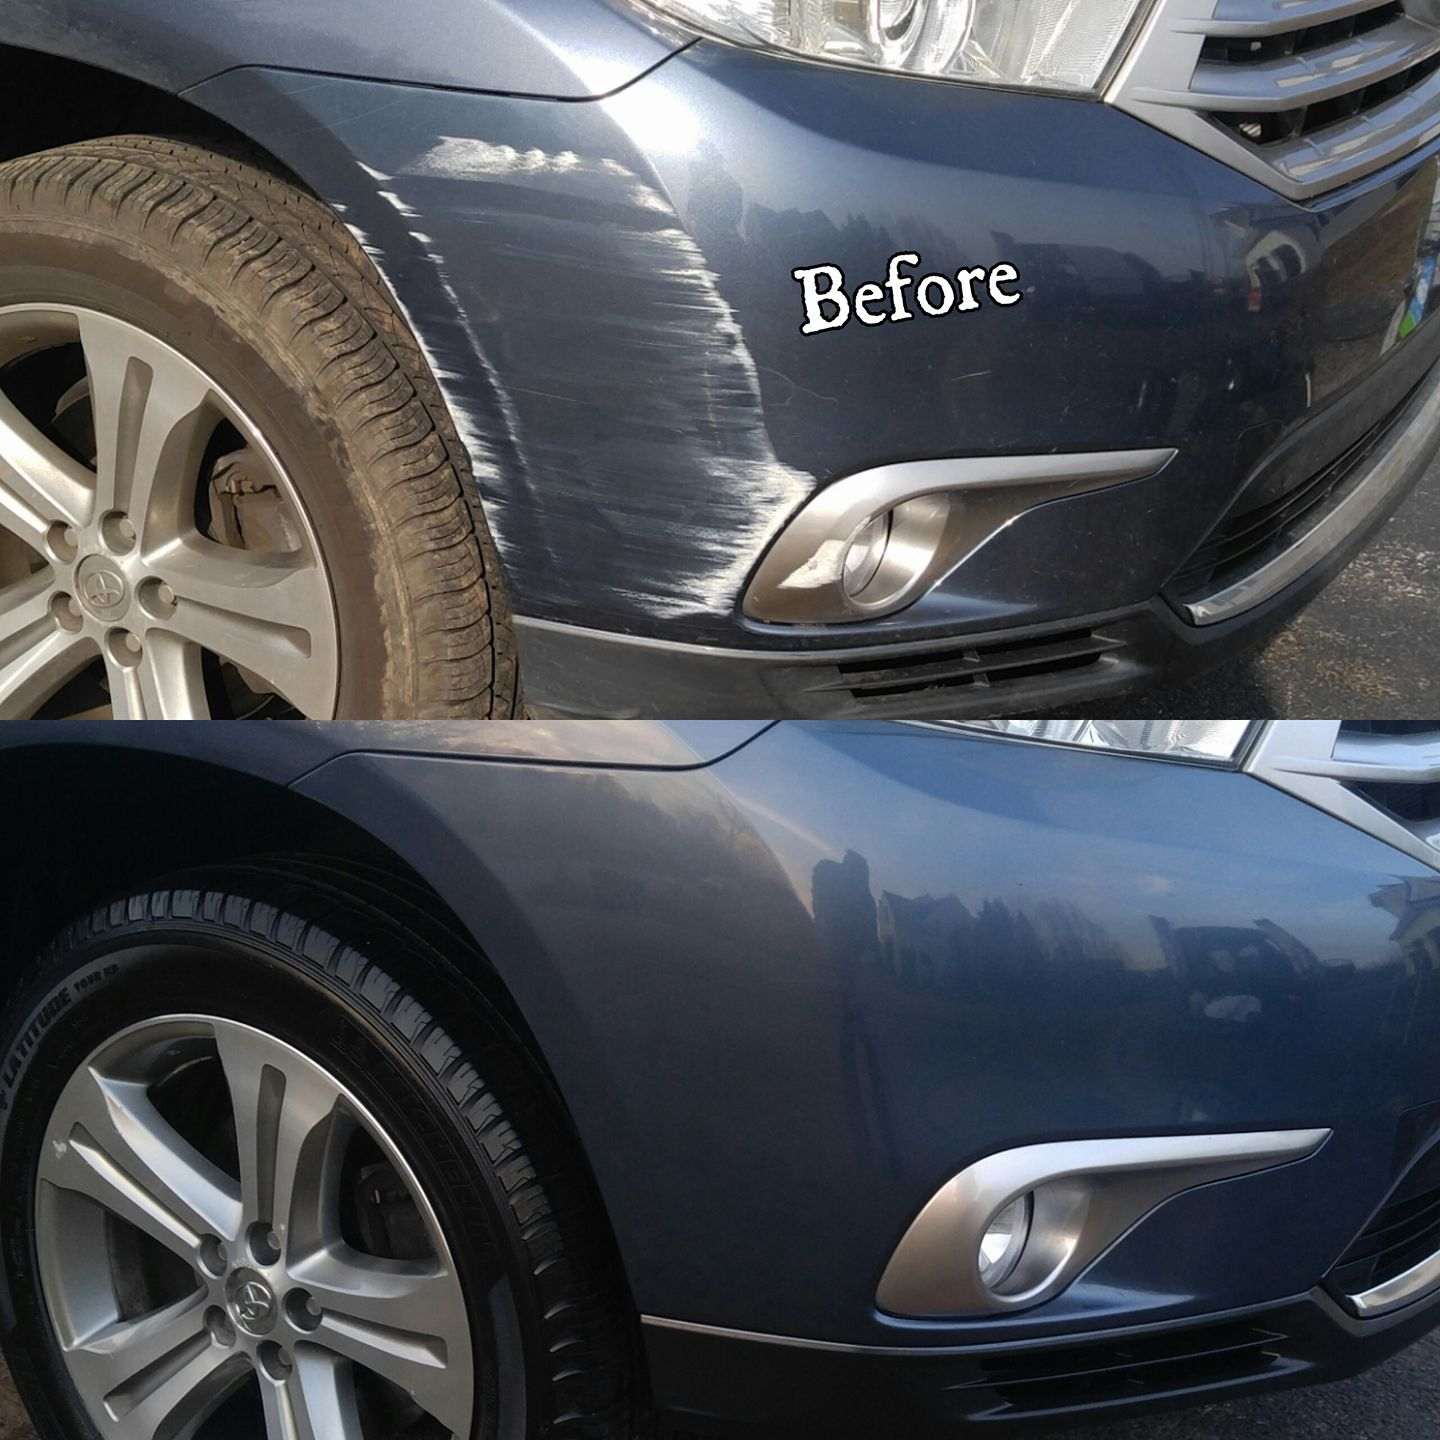 Fixing a Car Scratch: Which Products Work Best?